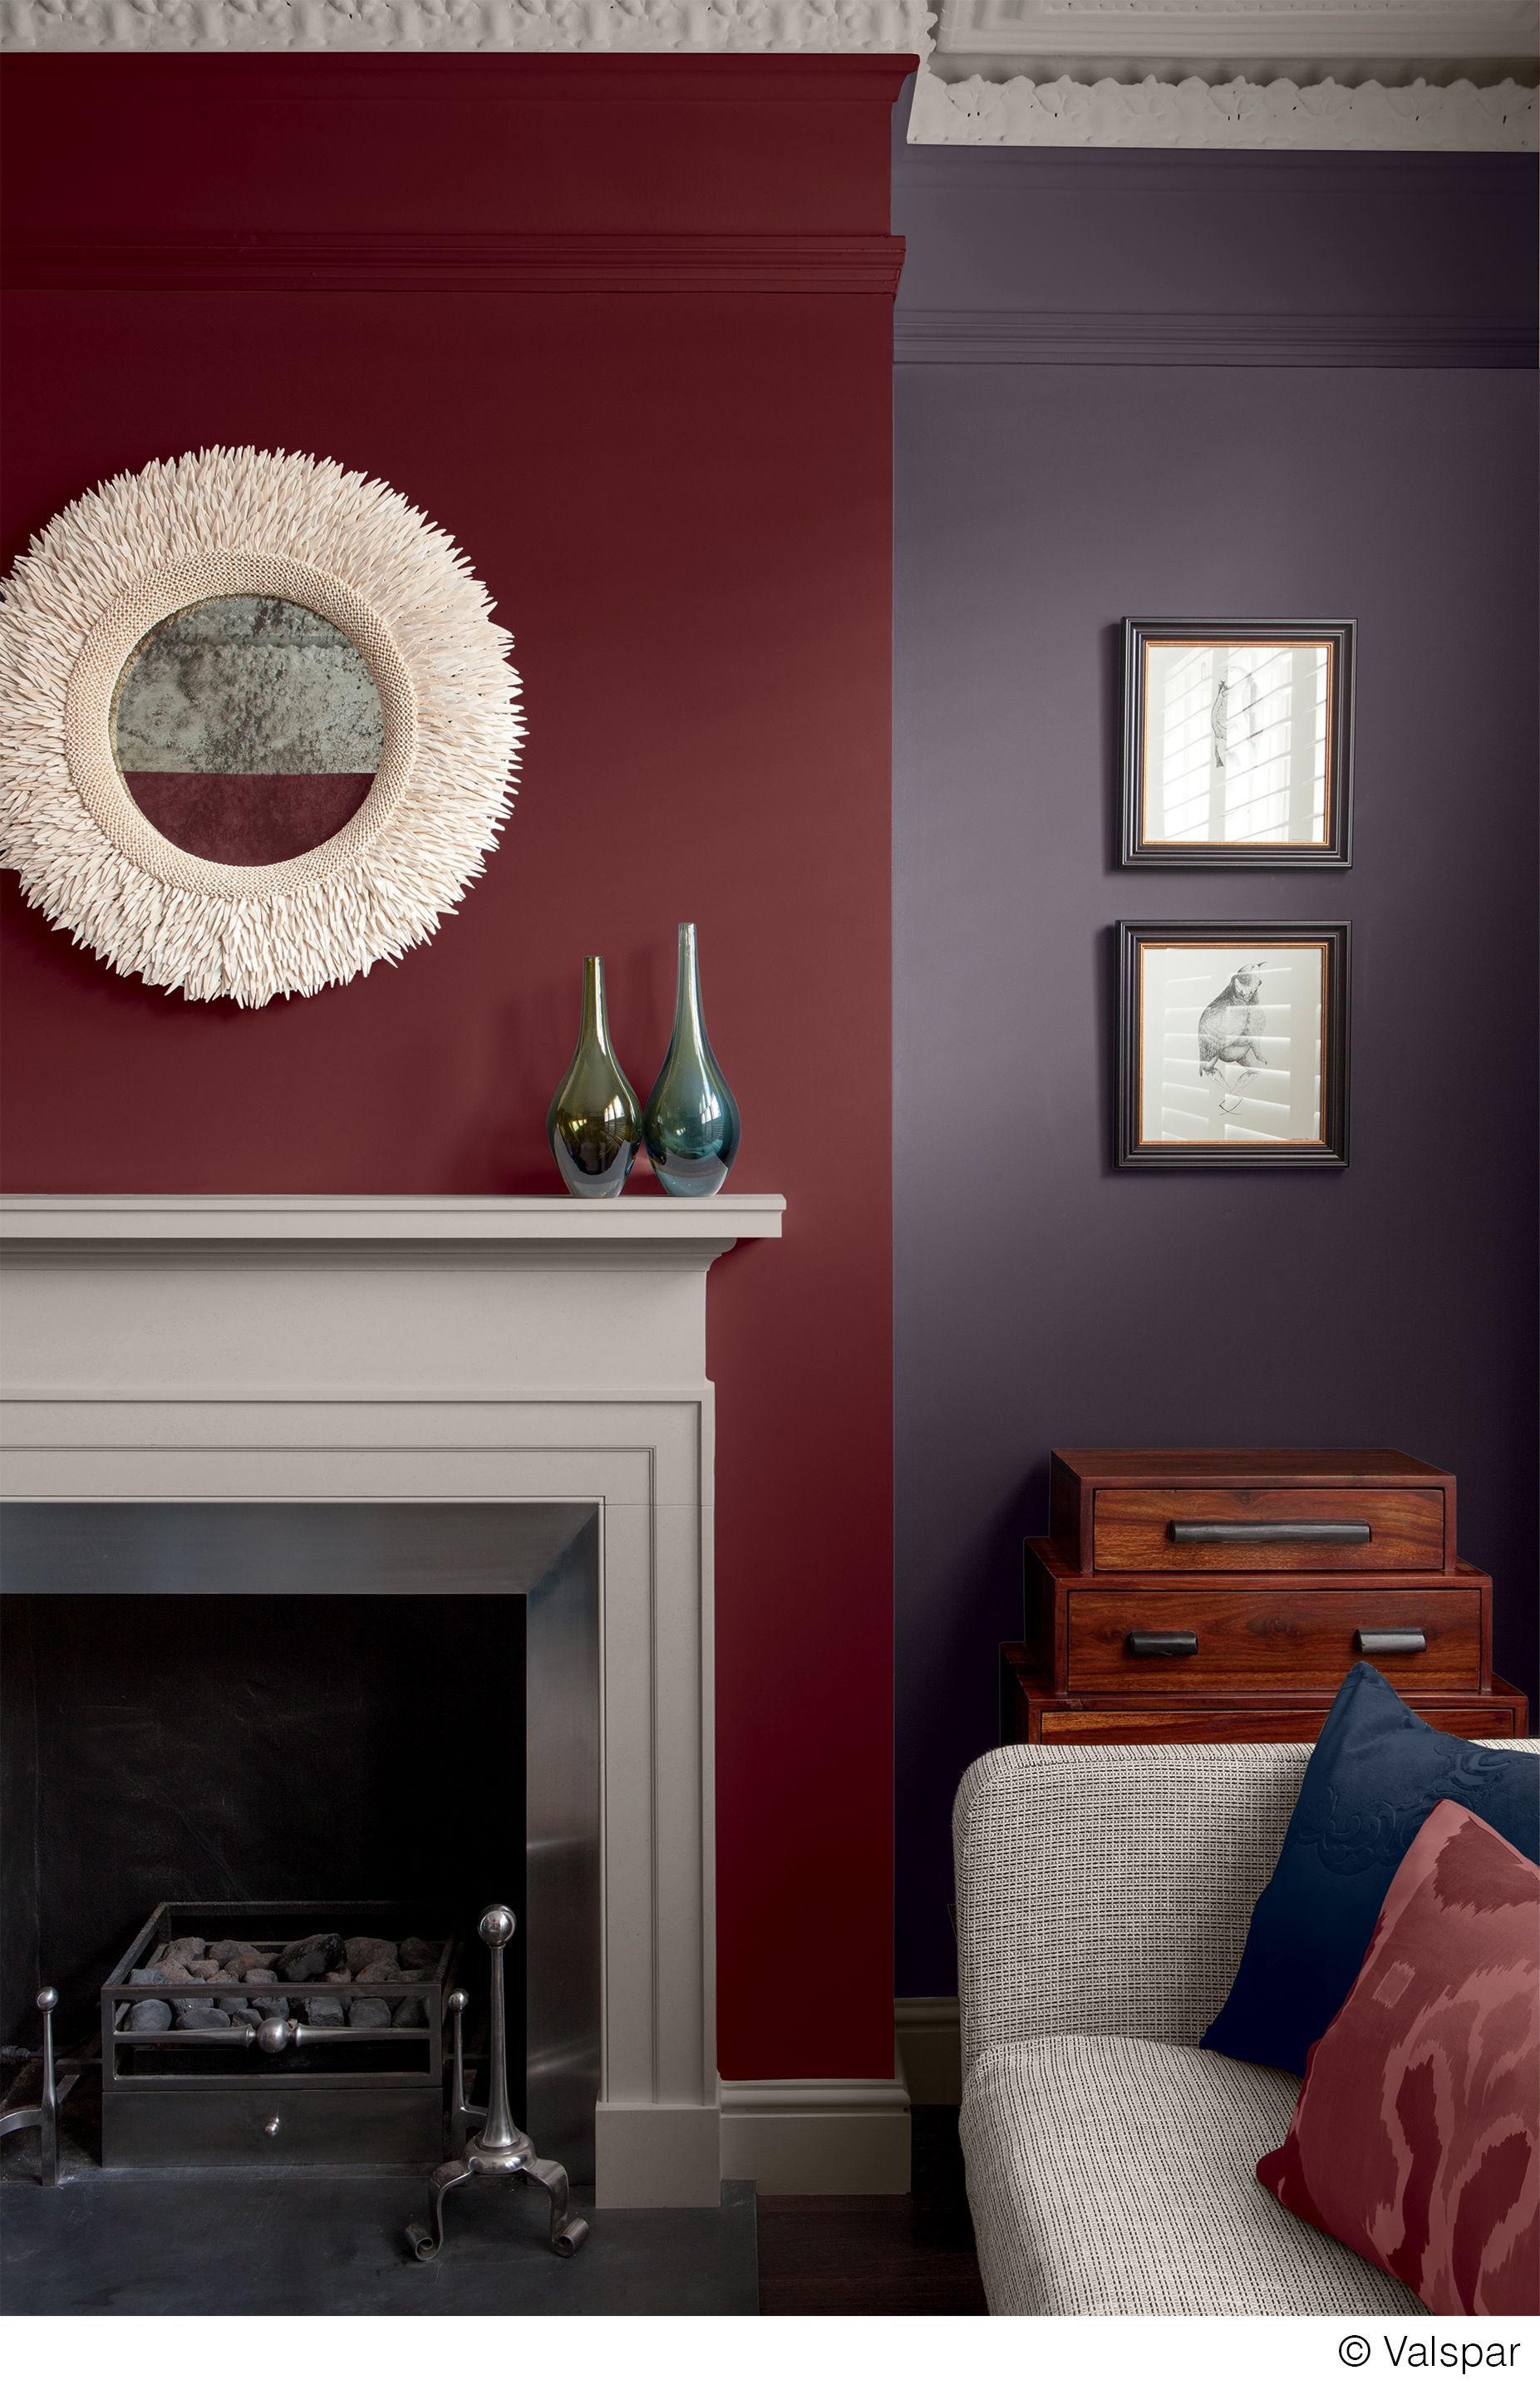 This mix of colors and textures makes for a cozy, comfortable room ...